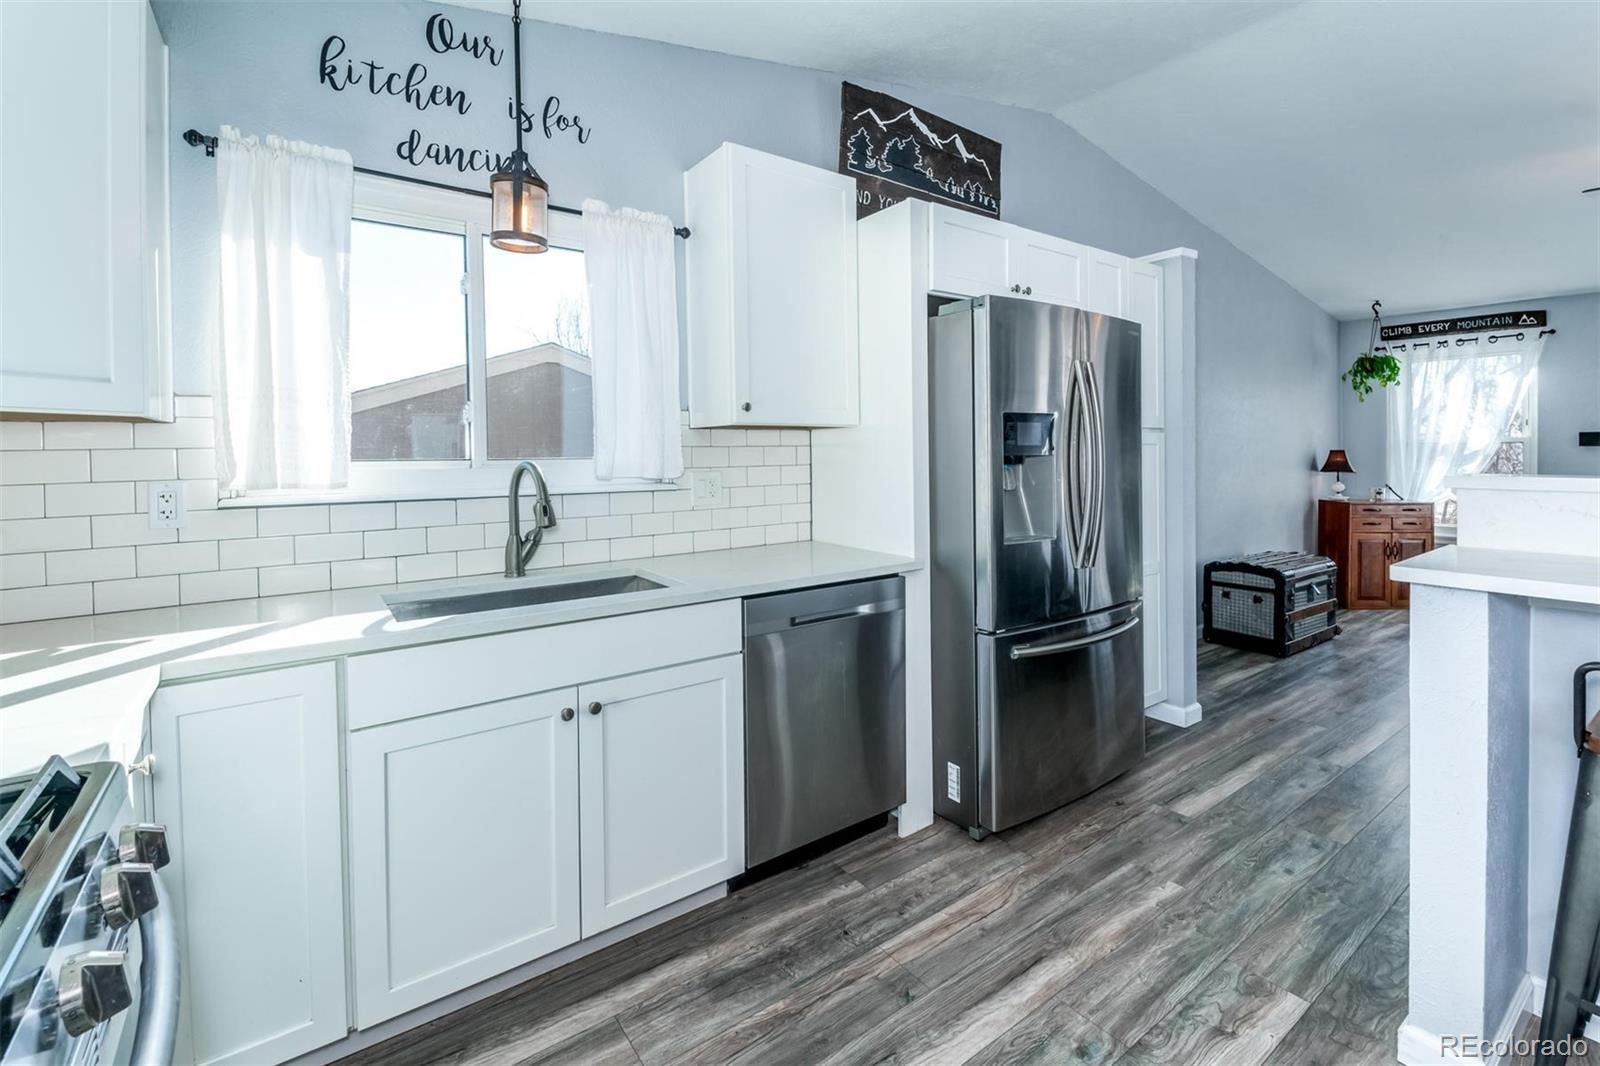 MLS# 5599126 - 7 - 5806 W 74th Place, Arvada, CO 80003